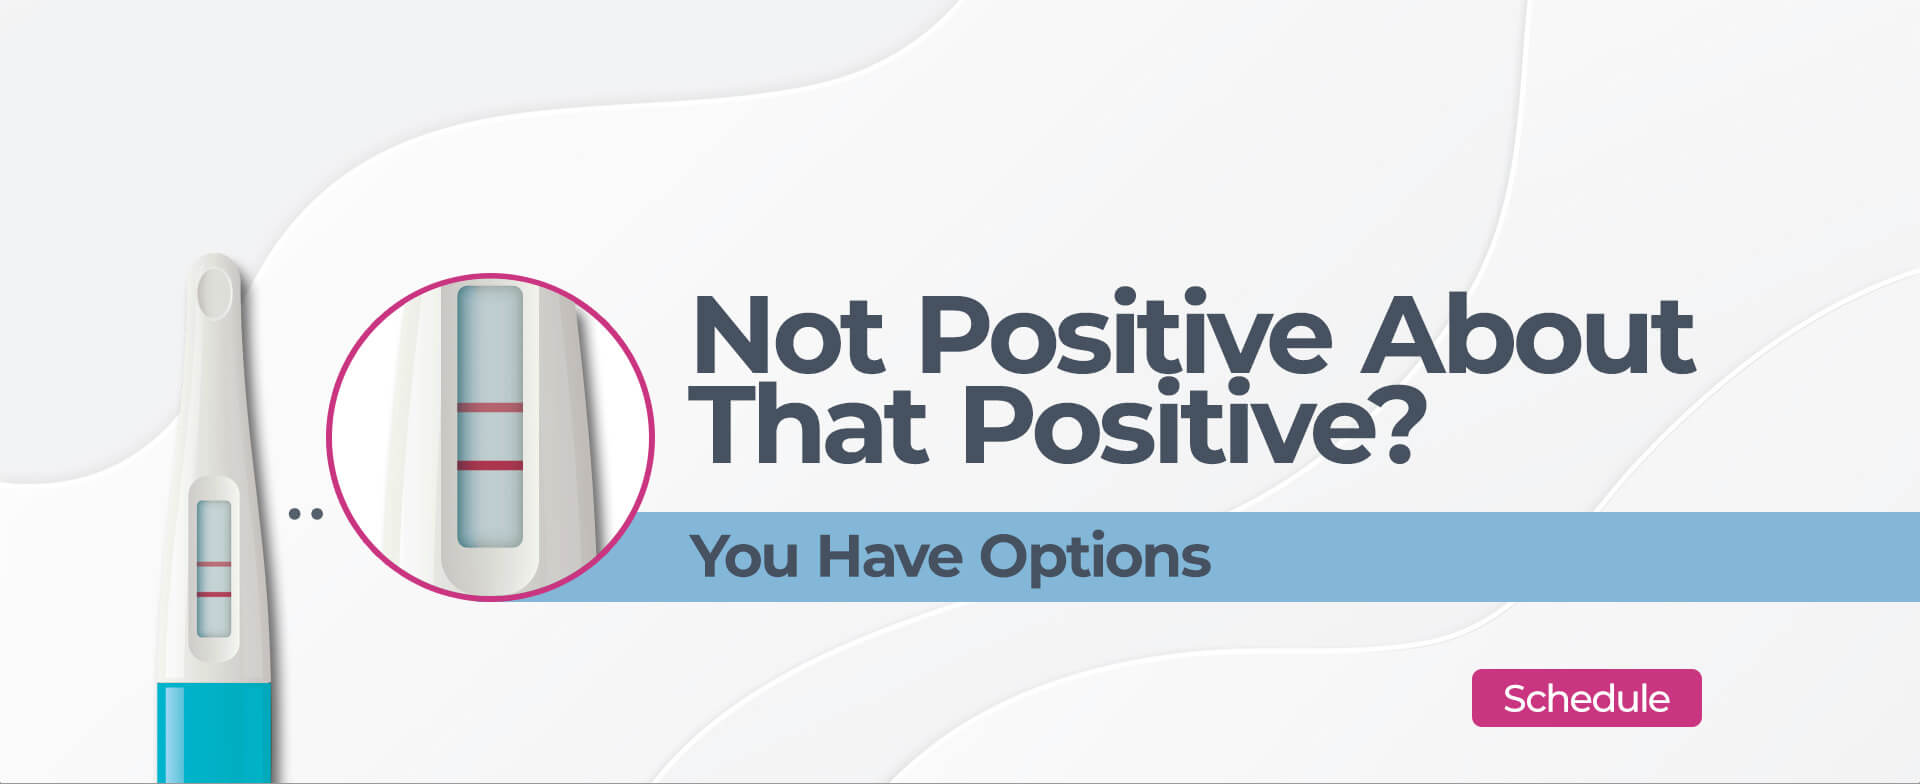 Not Positive About That Positive? You Have Options